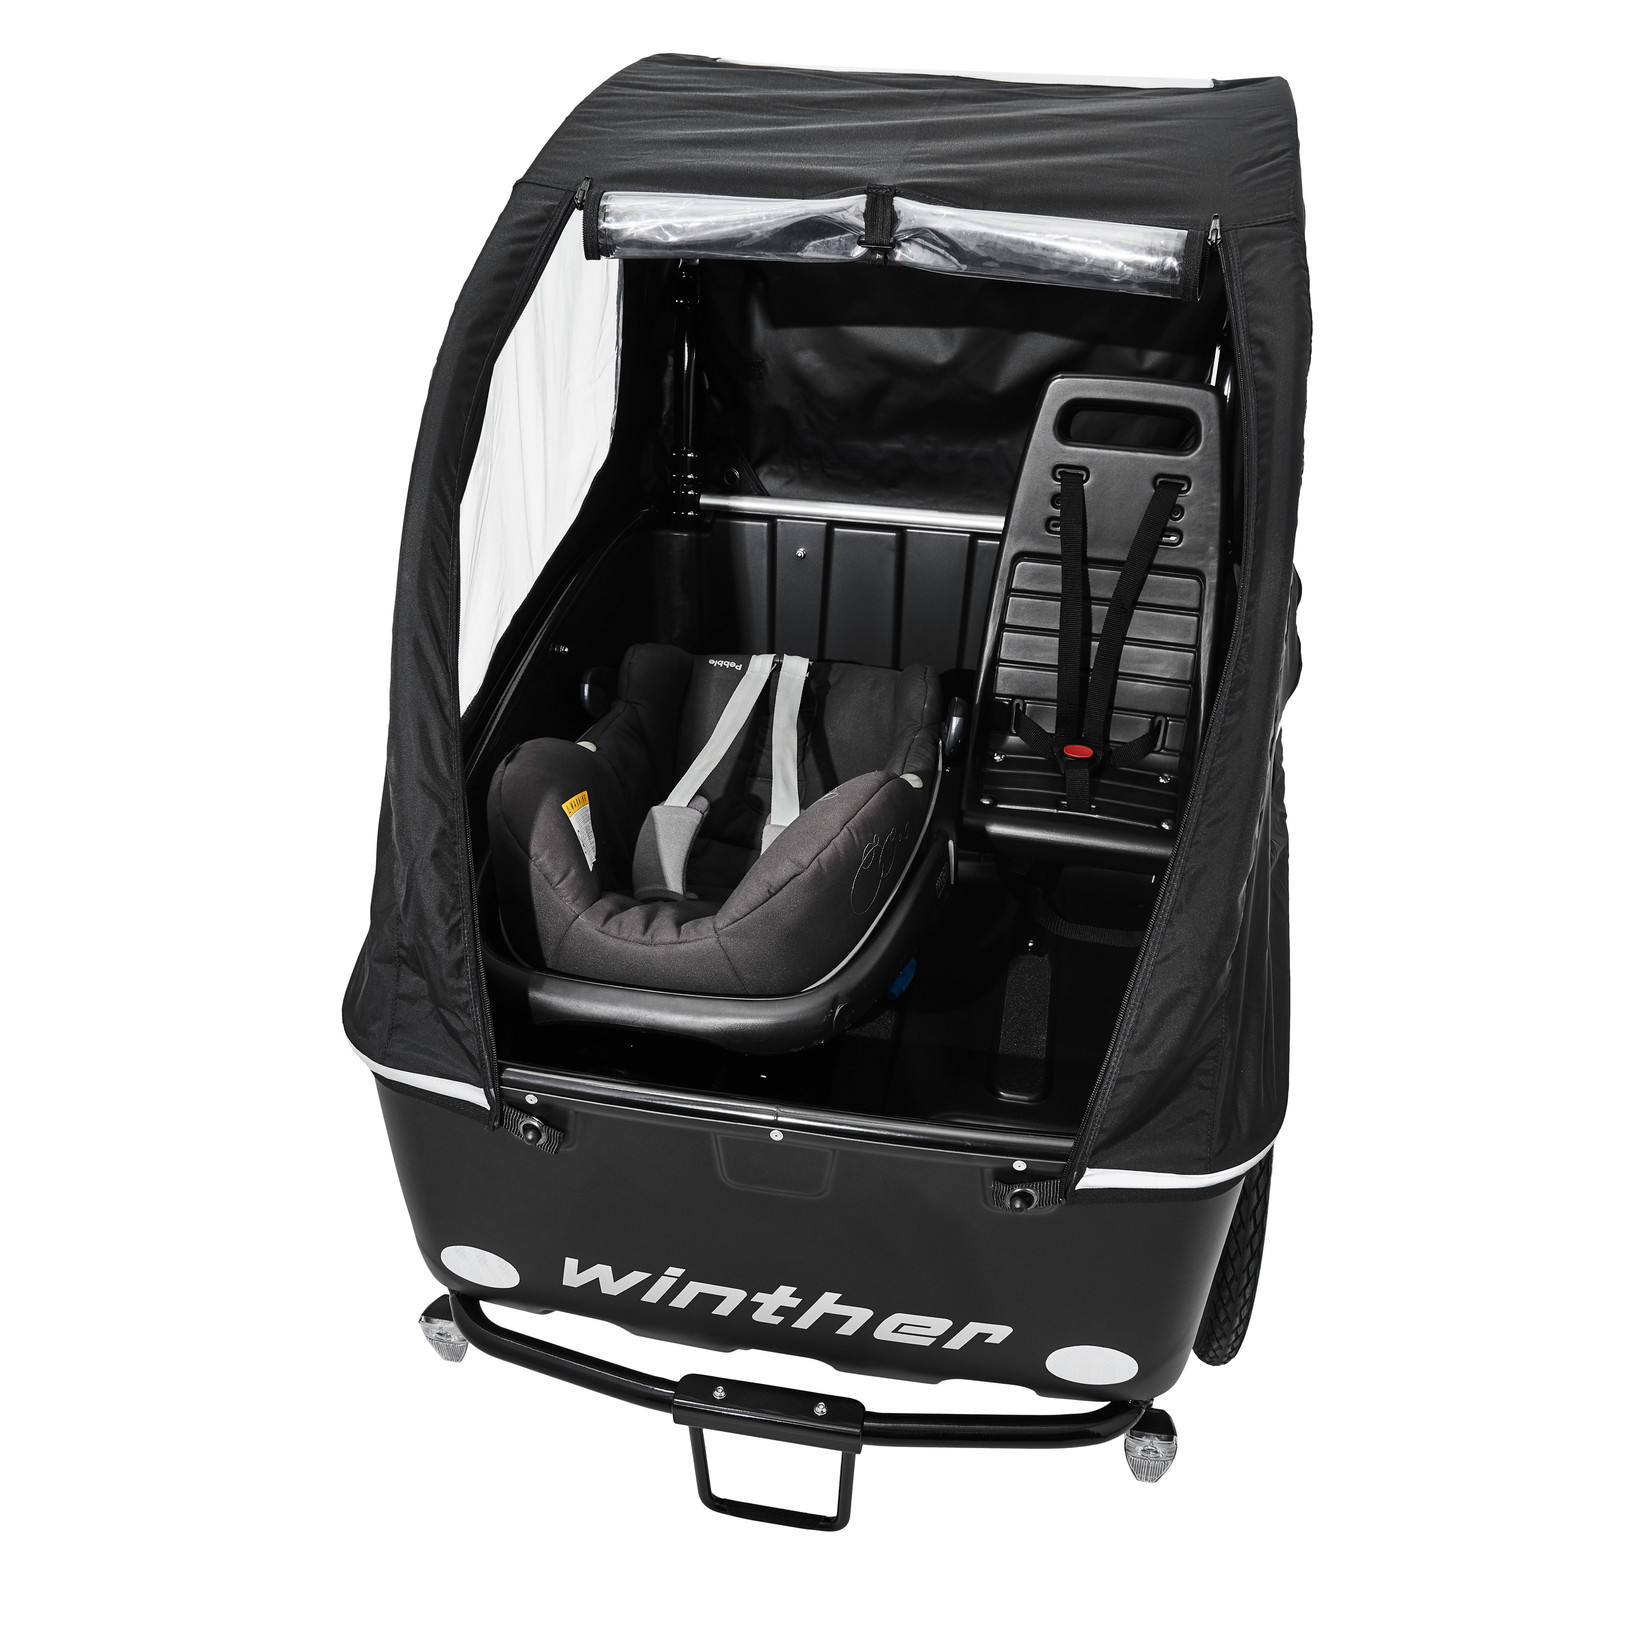 Winther Bikes Winther E-Cargoo